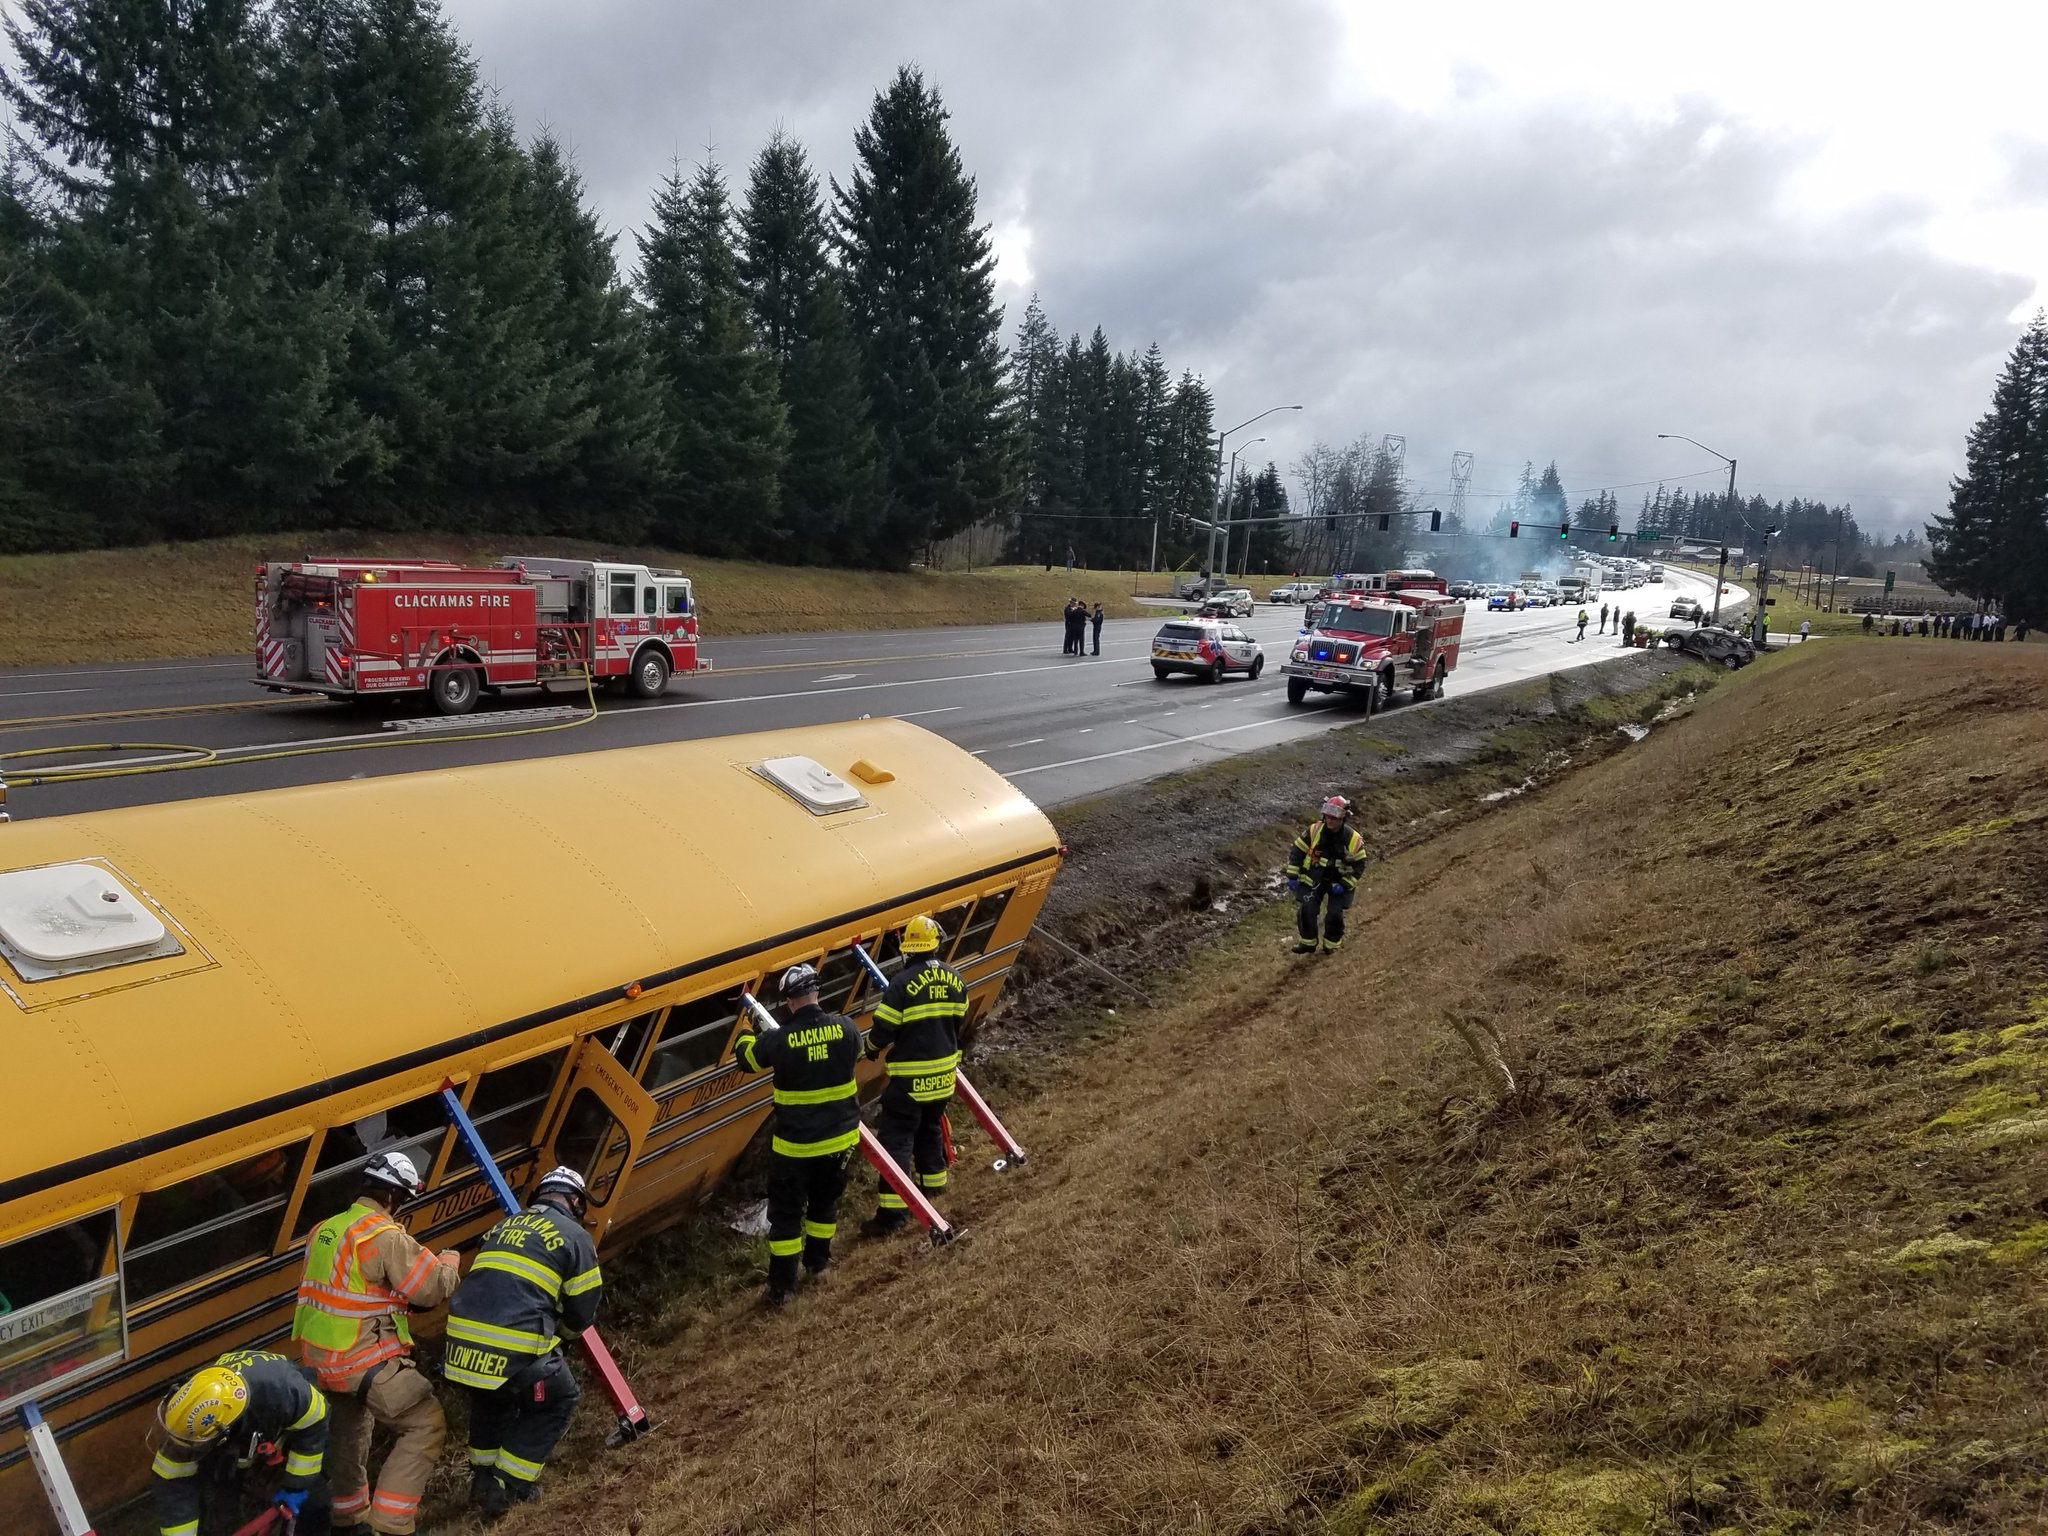 A school bus was involved in a multi-vehicle crash 2 miles west of Sandy on March 12, 2019. Clackamas Fire says several students, the bus driver, and others were taken to the hospital. Photo courtesy Oregon State Police{ }